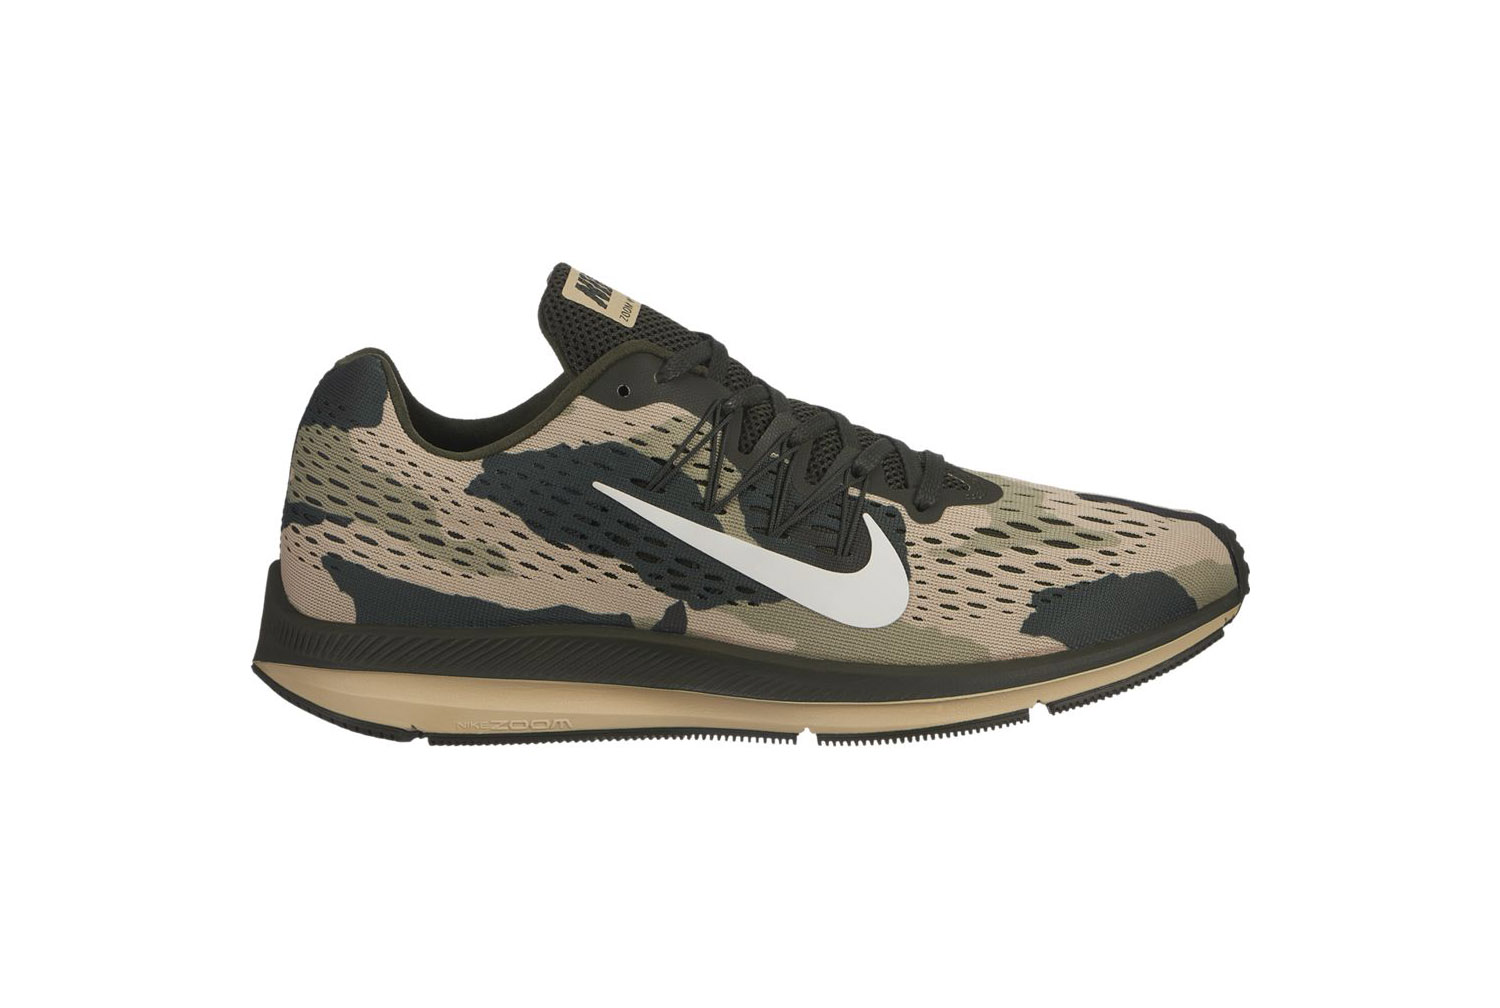 Nike Air Zoom Winflo 5 Camo